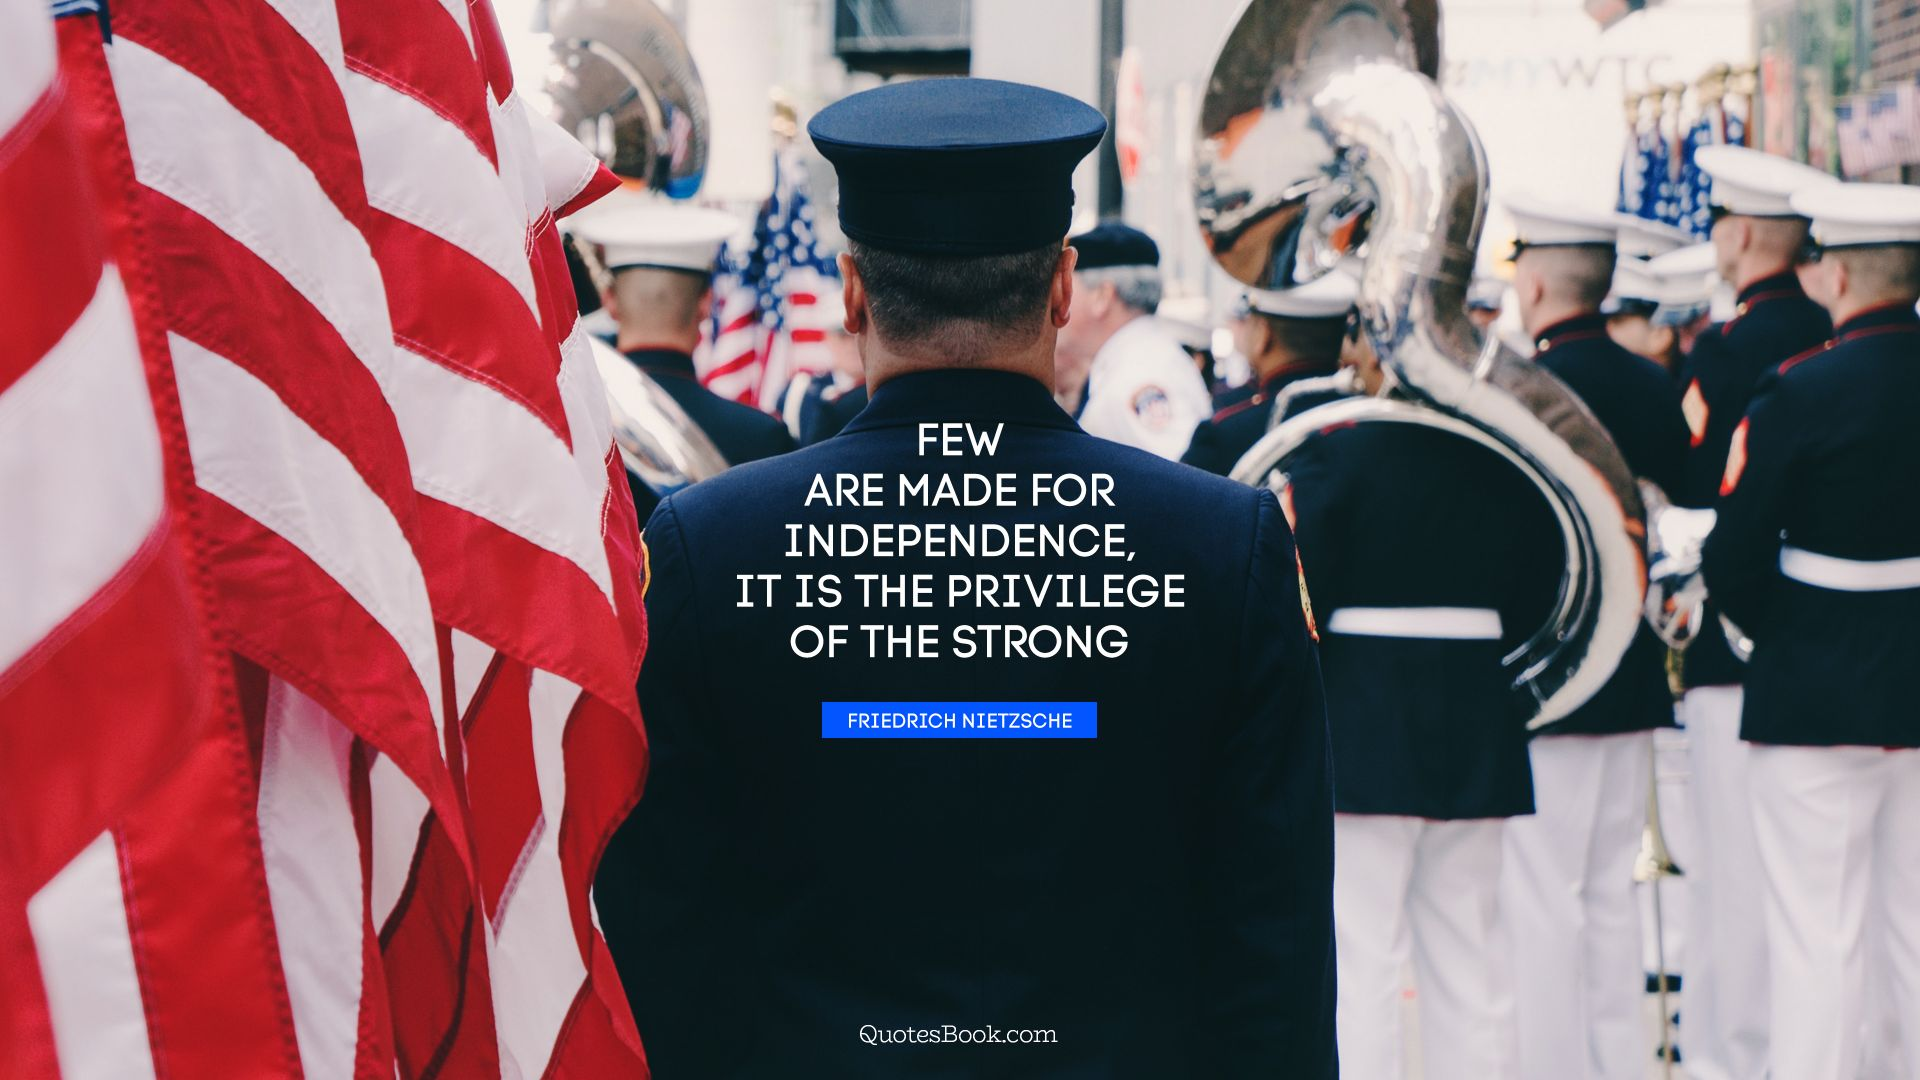 Few are made for independence, it is the privilege of the strong. - Quote by Friedrich Nietzsche